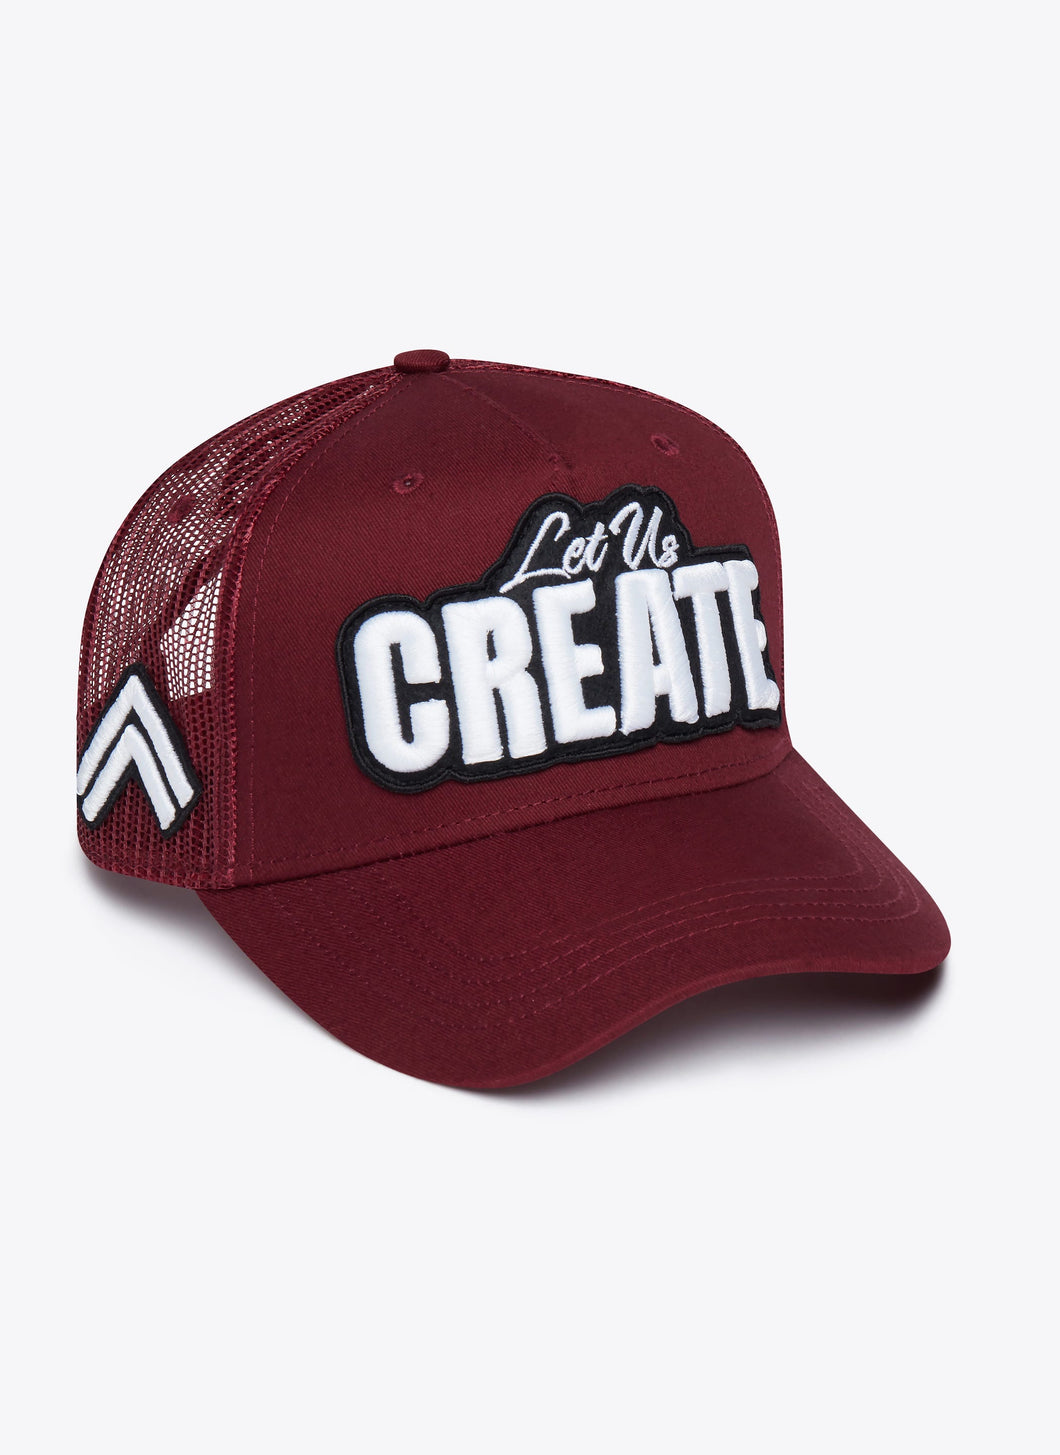 LIMITED EDITION BORDEAUX 3D EMBROIDERY TRUCKER CAP